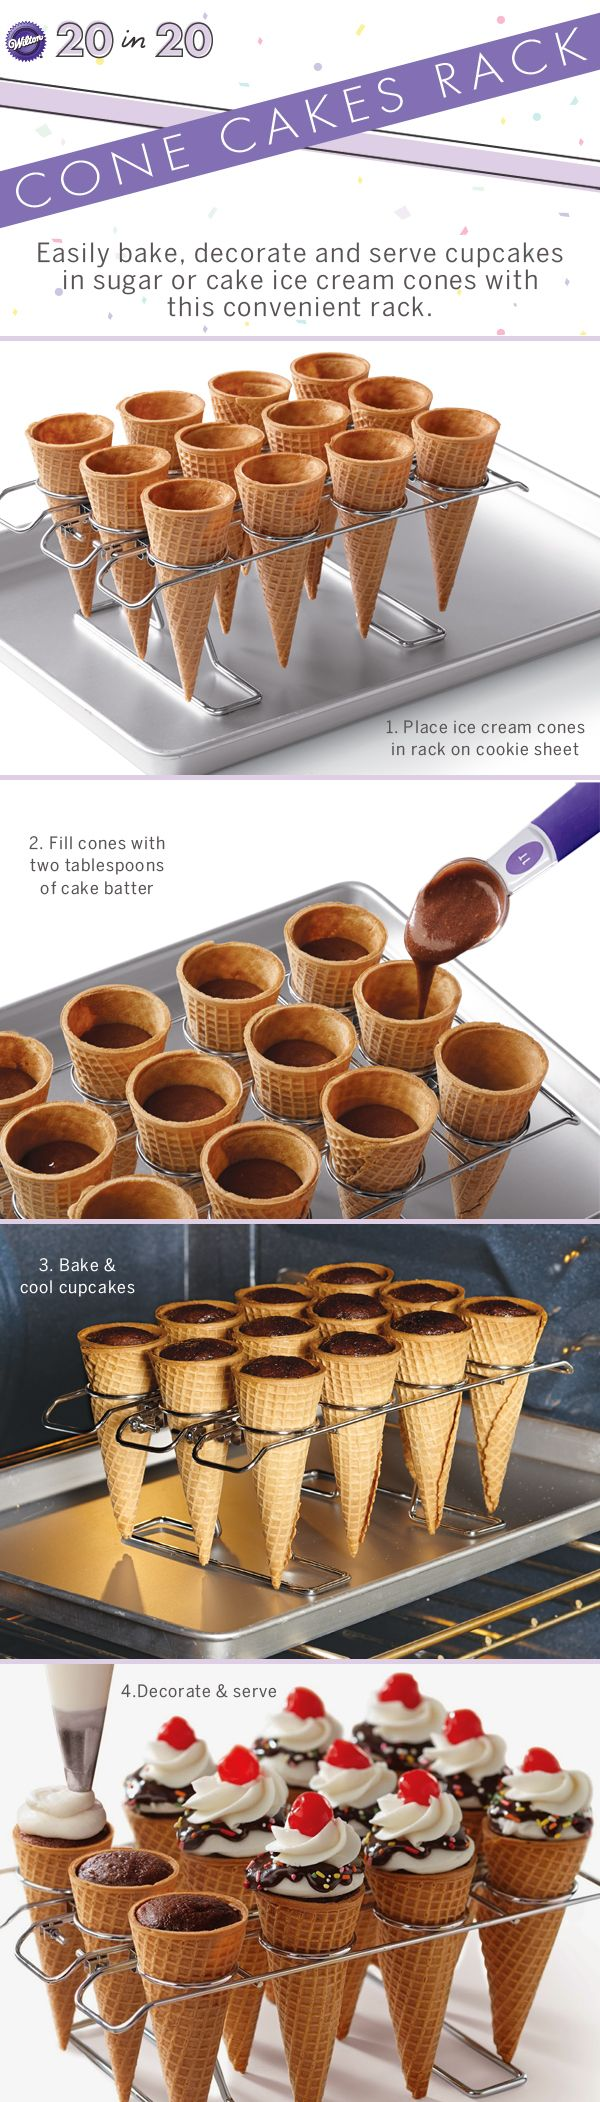 Make cone cupcakes easily with this baking rack!